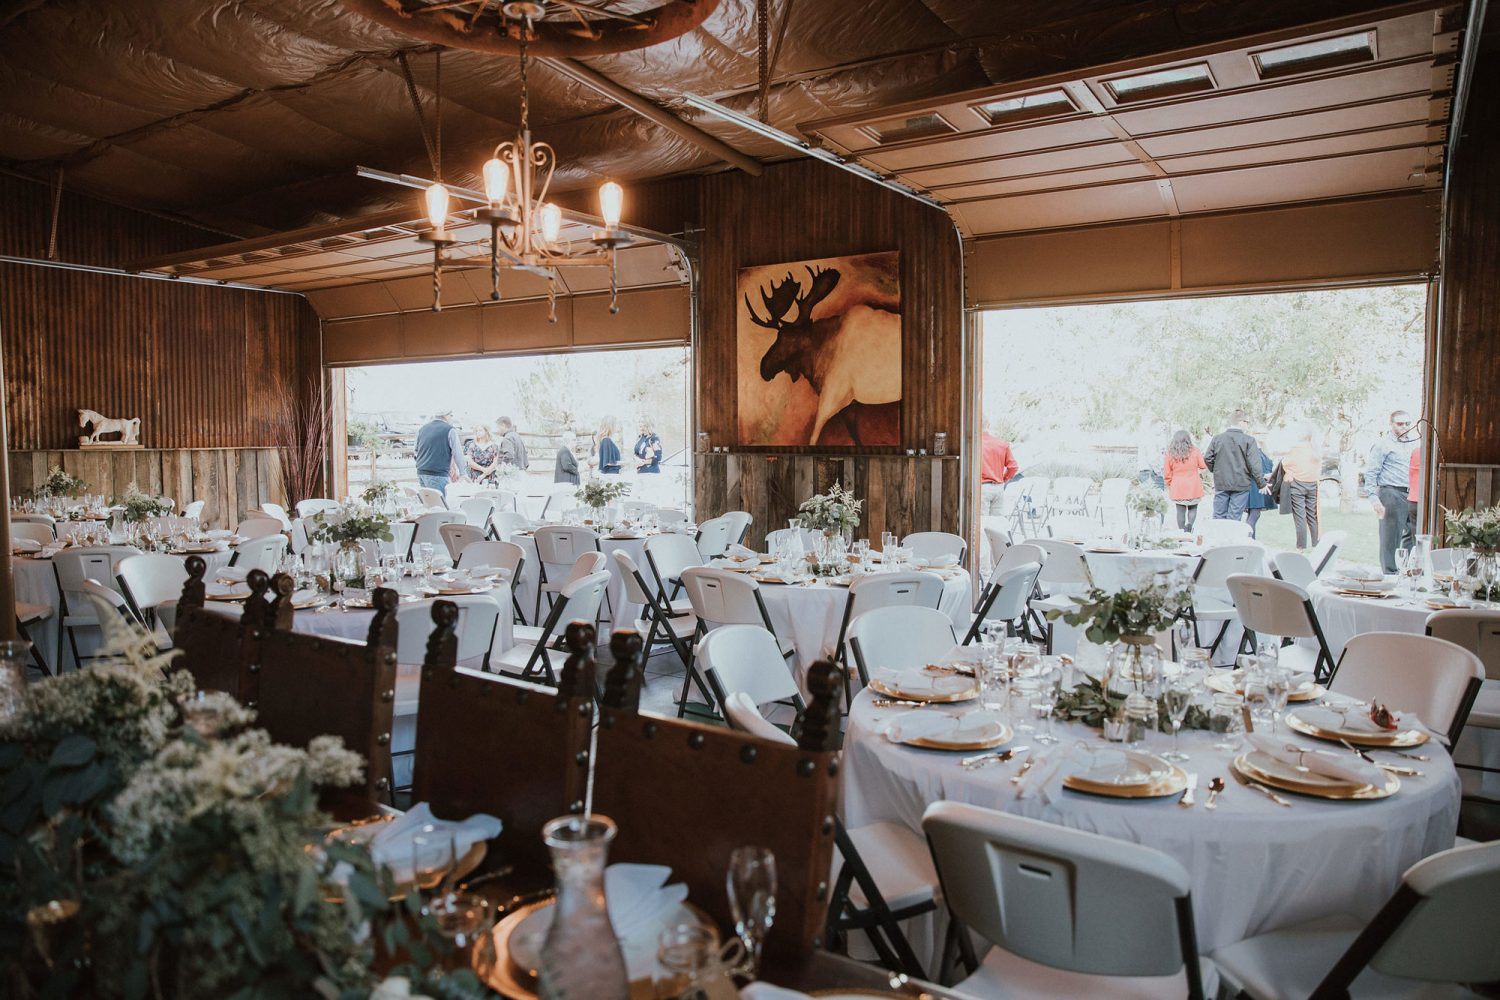 Barn venue from a Rustic Glam Wedding at Triple J Ranch in Kirtland, New Mexico